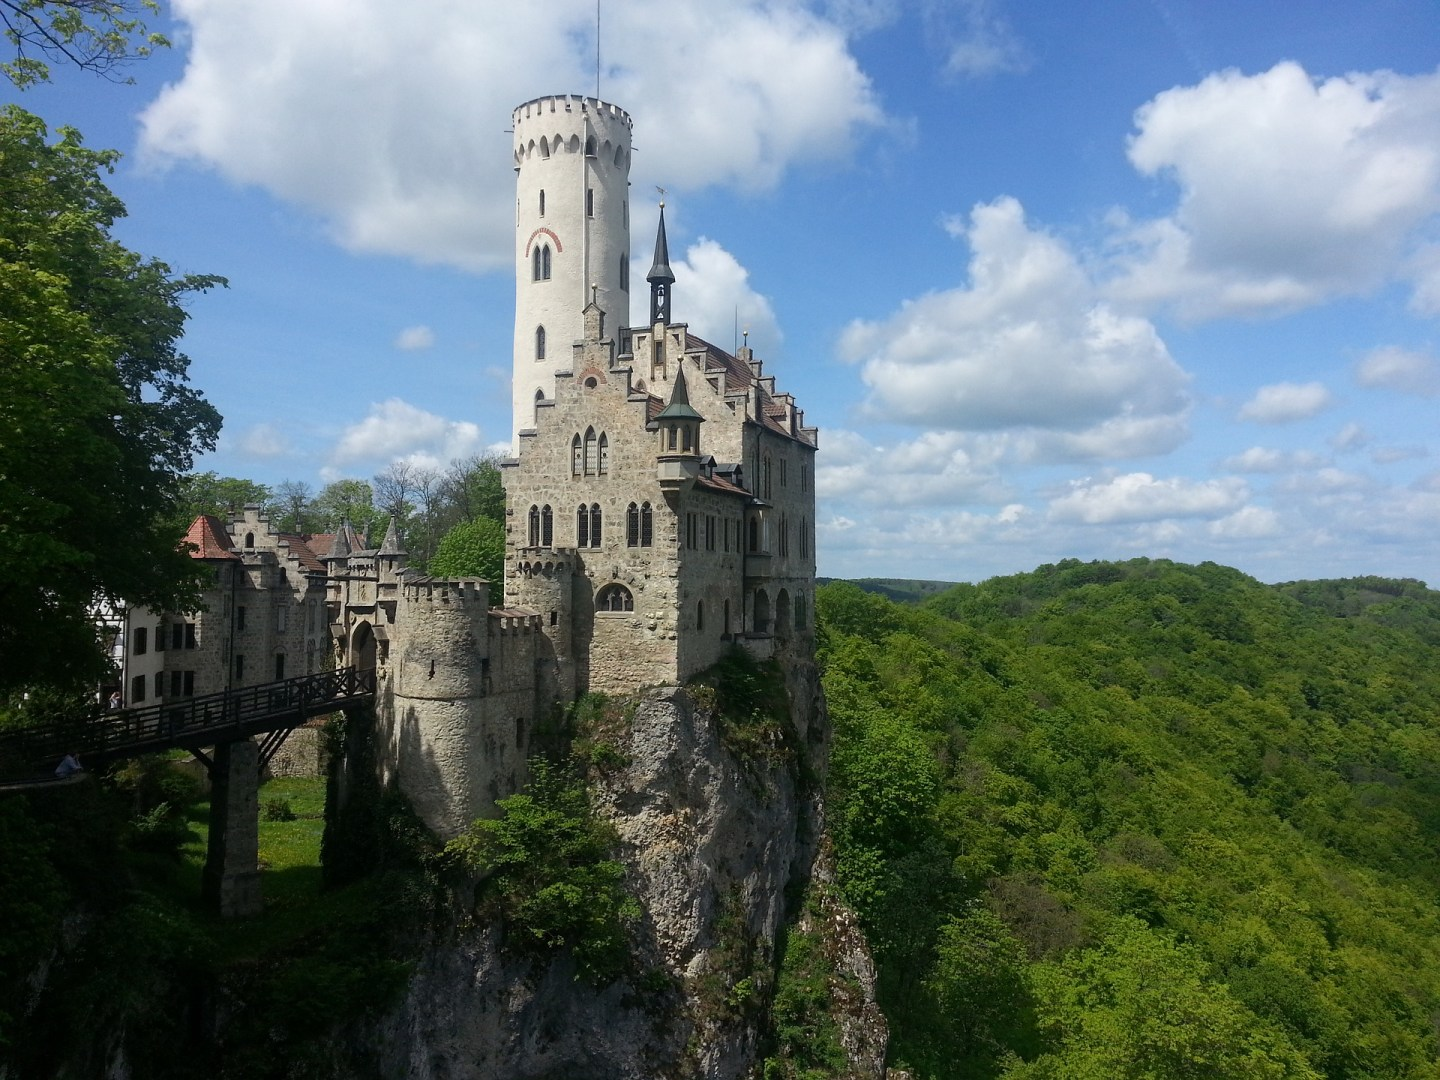 Schloss Lichtenstein looking regal on its cliff